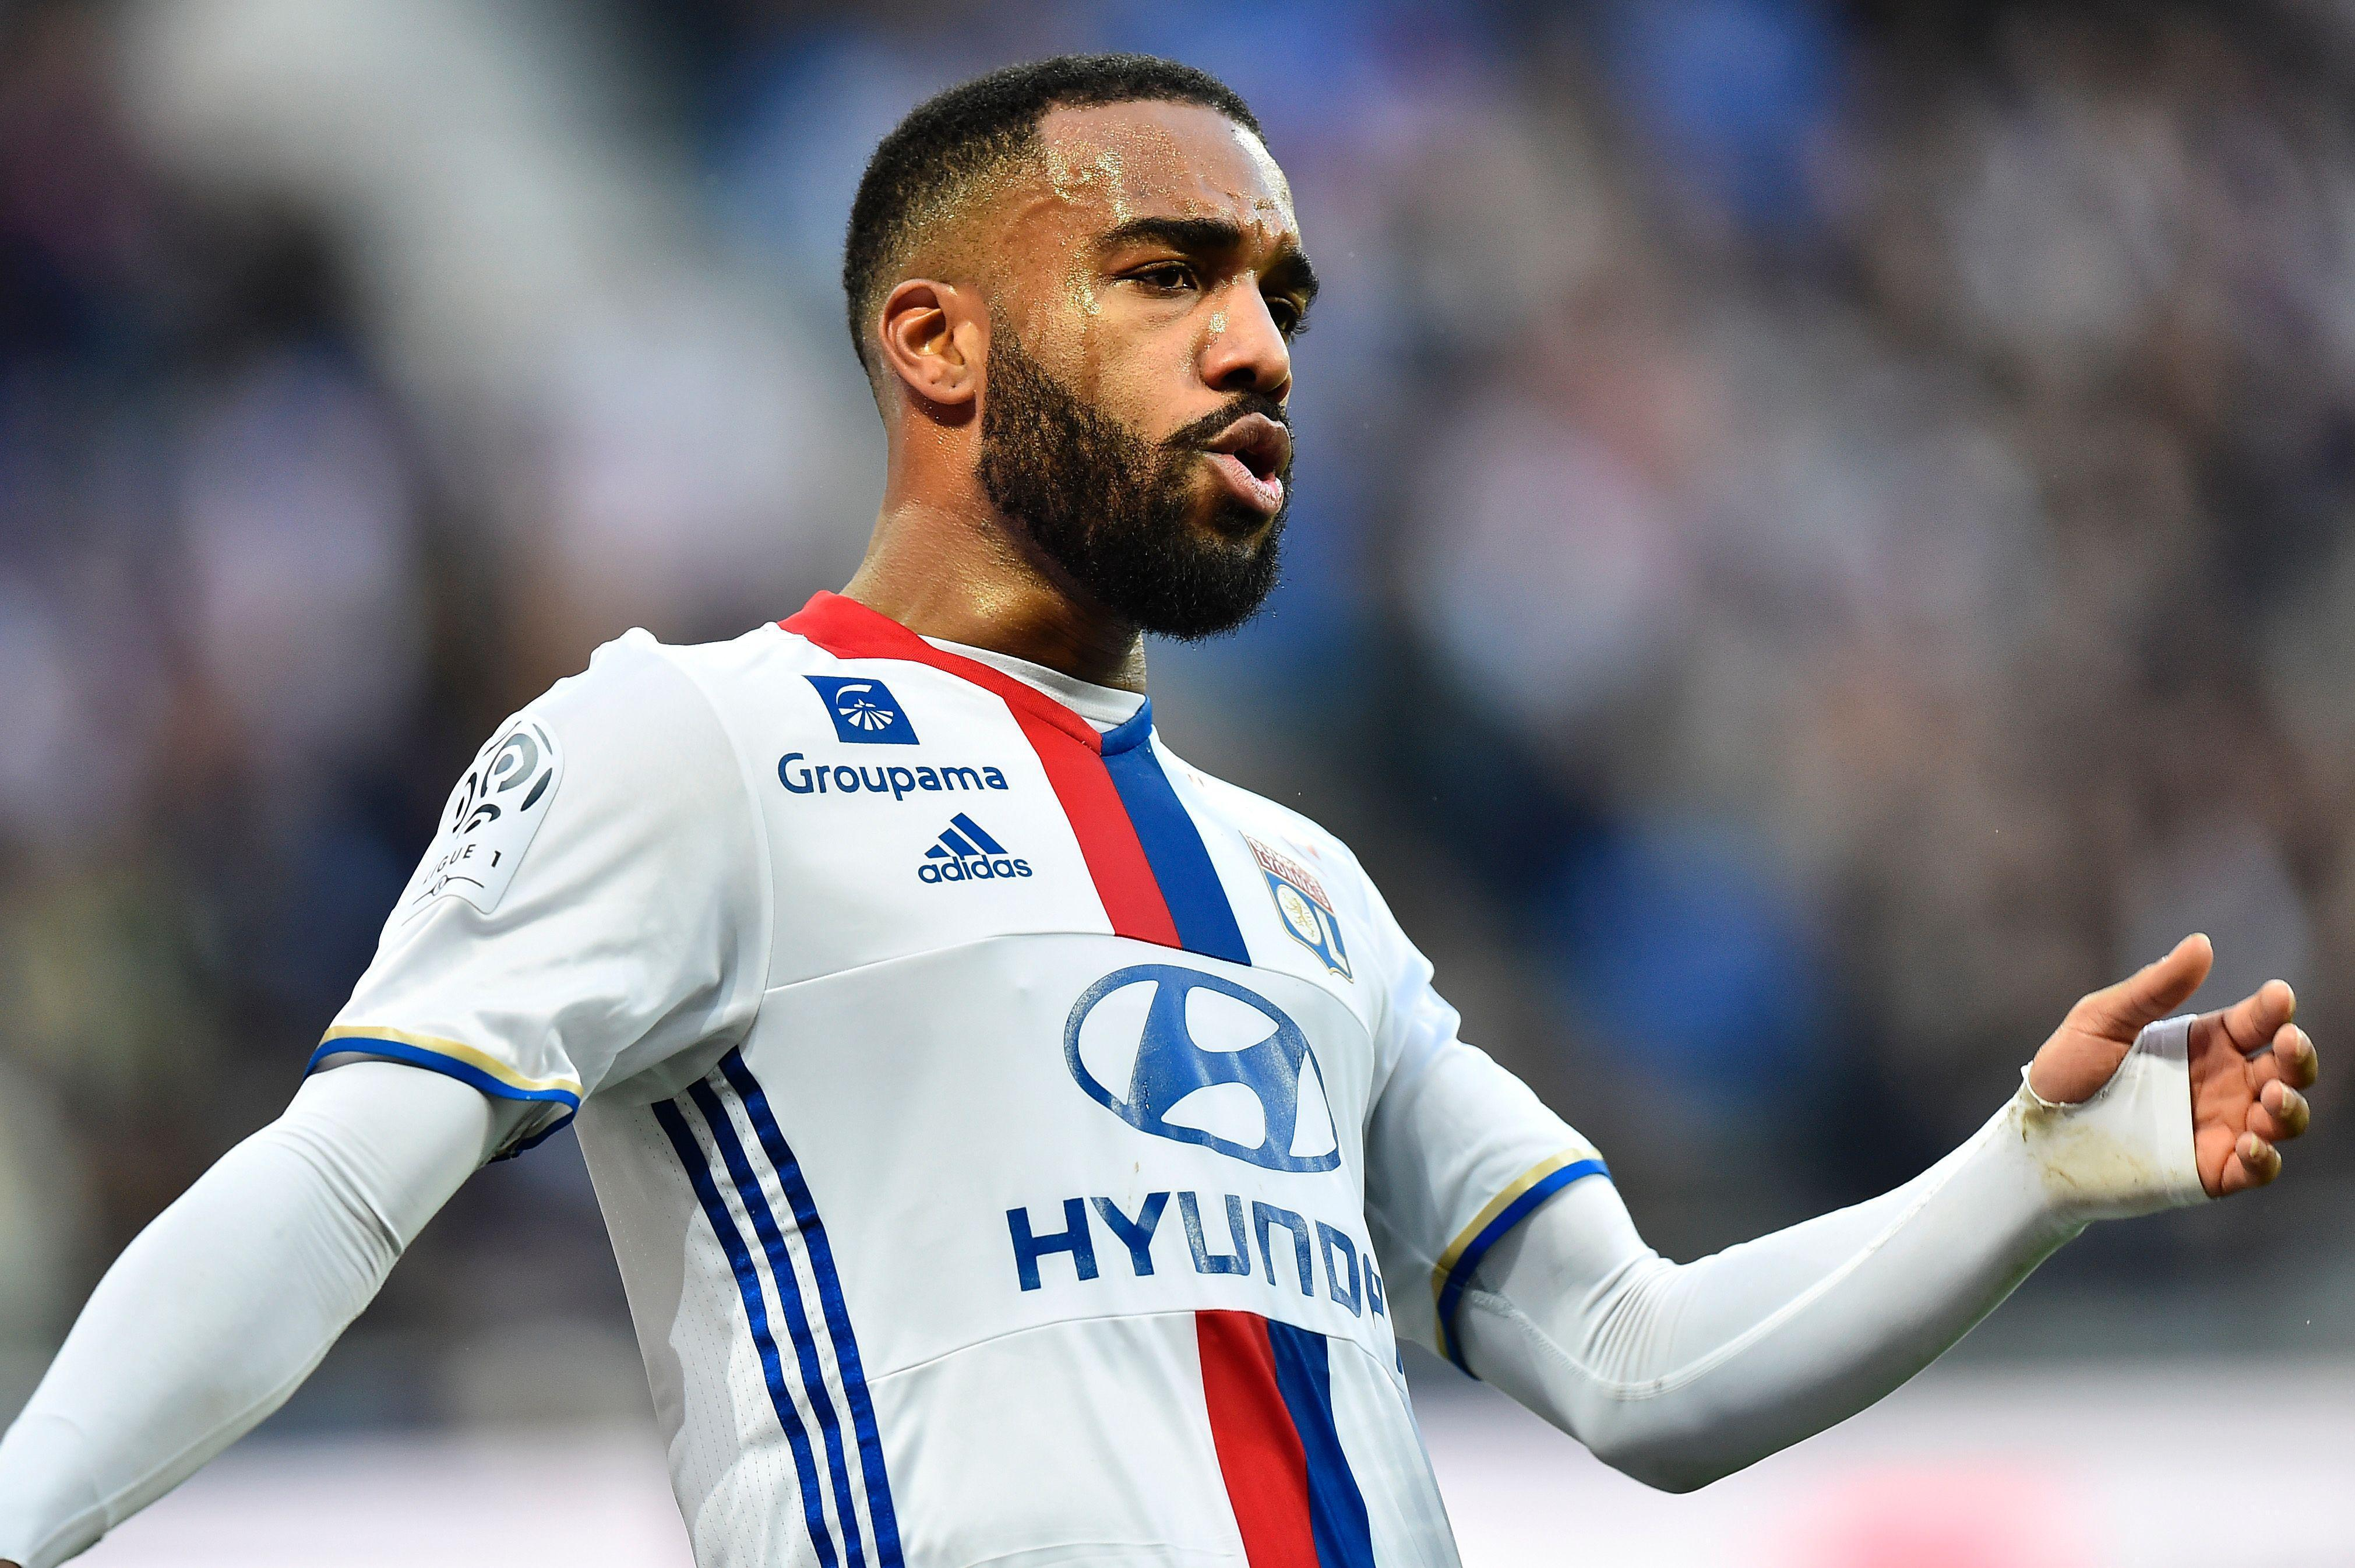 Lacazette could be a real hit on Dream Team